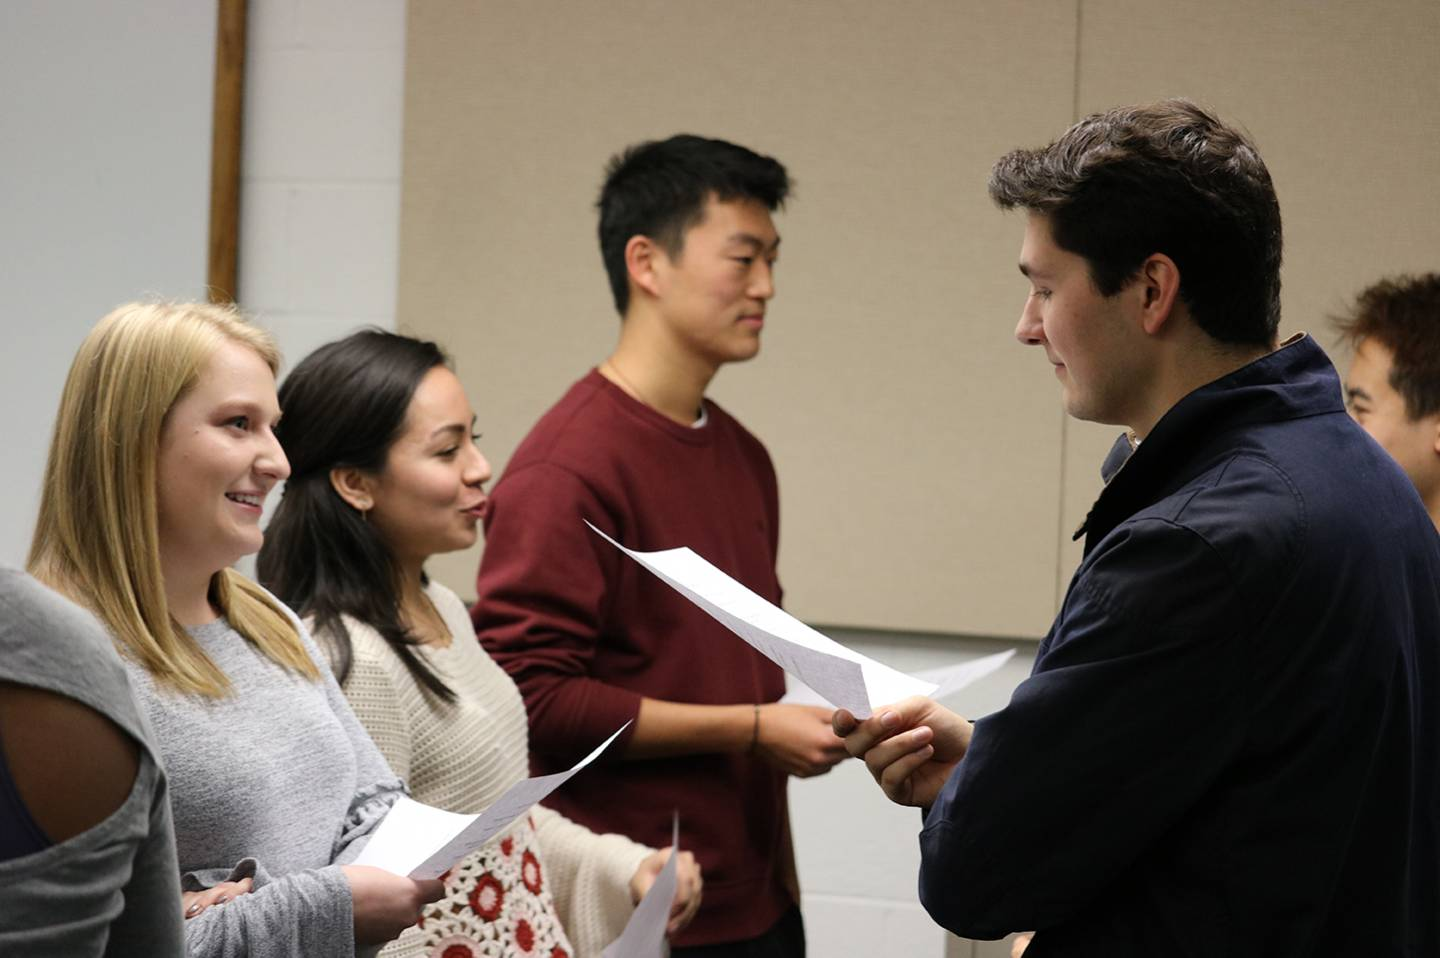 The Pursuit Of Happiness Hopkins Course Helps Students